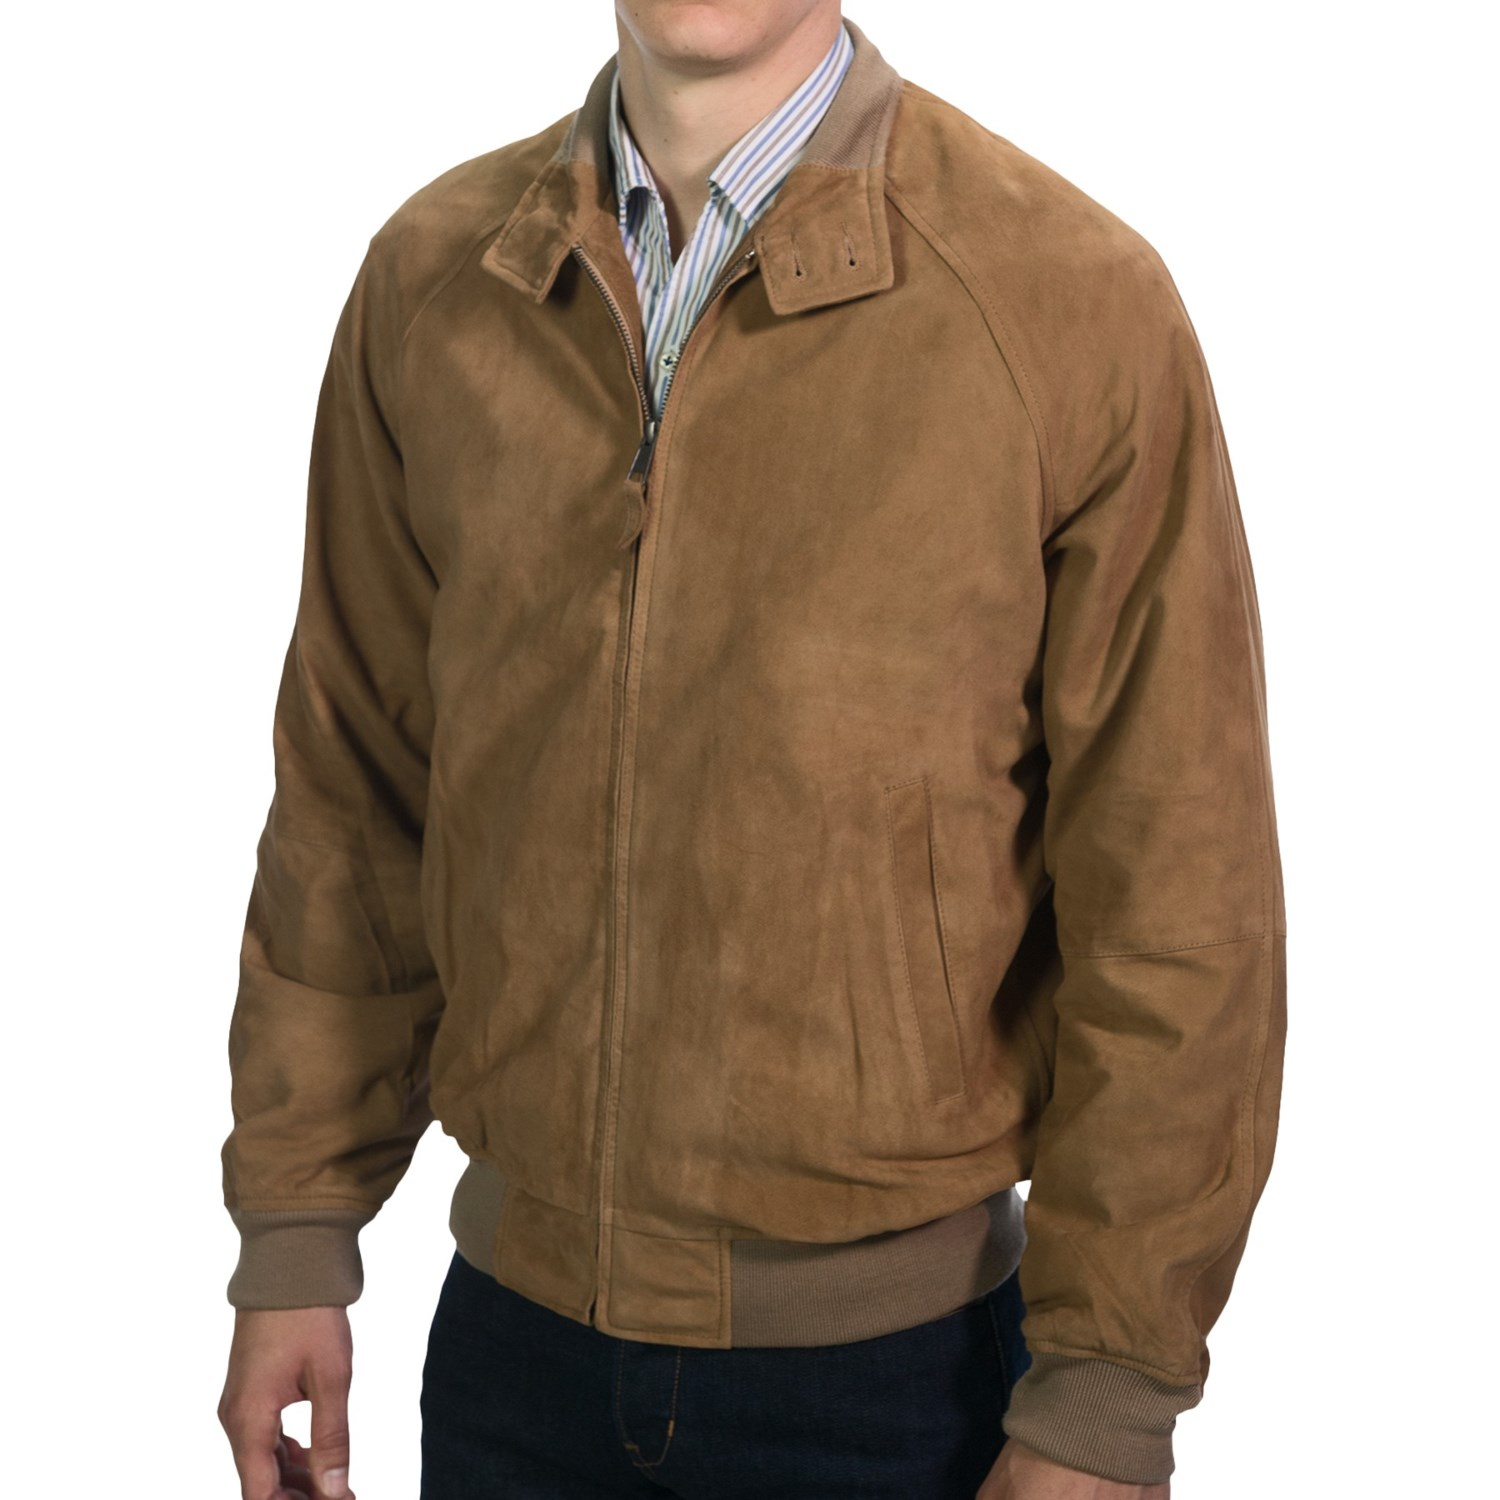 Golden Bear Goat Suede Jacket For Men 8195u Save 50